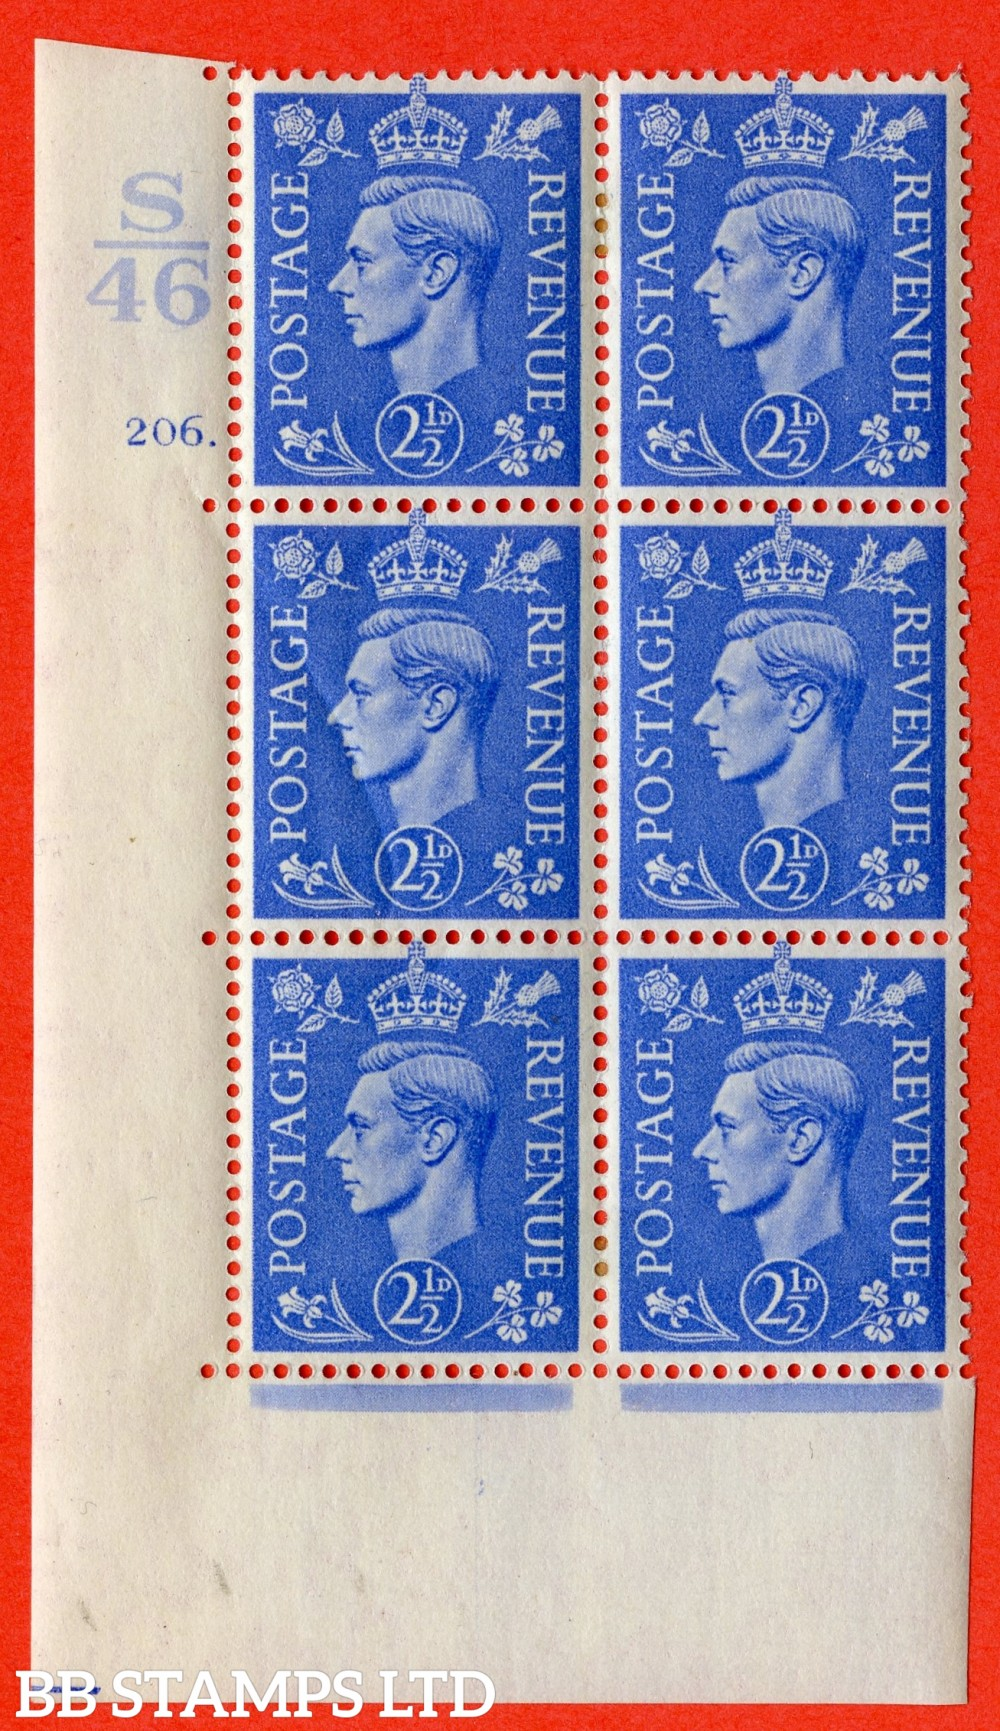 """SG. 489. Q14. 2½d Light ultramarine. A very fine lightly mounted mint """"  Control S46 cylinder 206 dot """" control block of 6 with perf type 5 E/I."""